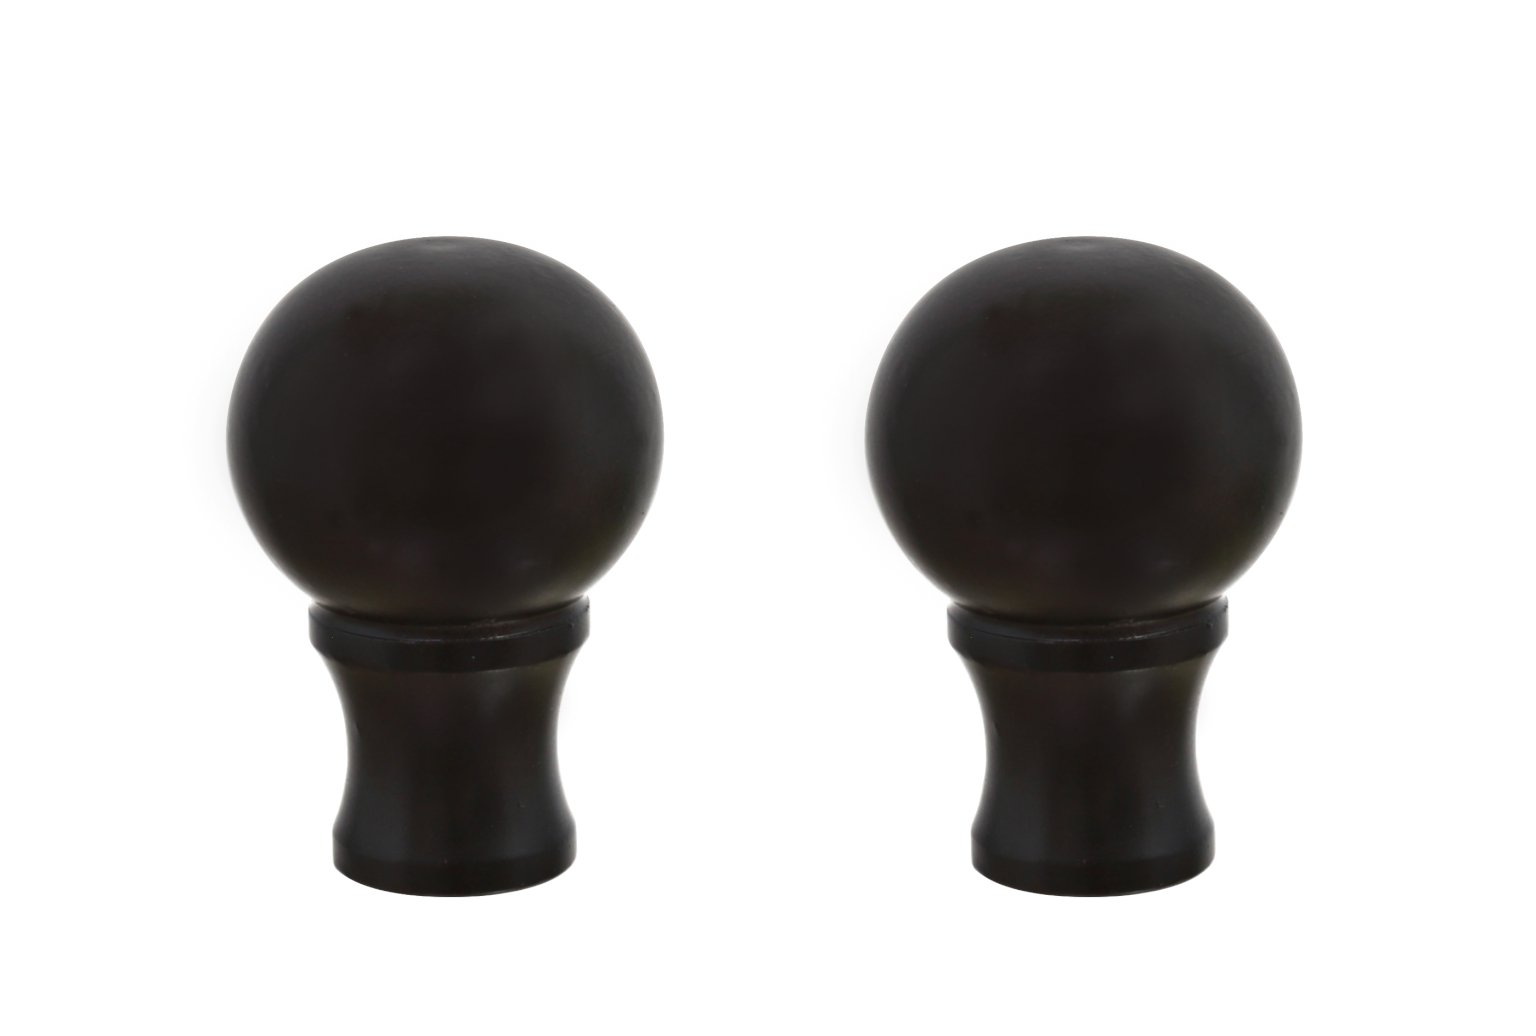 Aspen Creative 24018-32 Steel Lamp Finial Finish, 1 1/2'' Tall (2), 2 Pack, Oil Rubbed Bronze